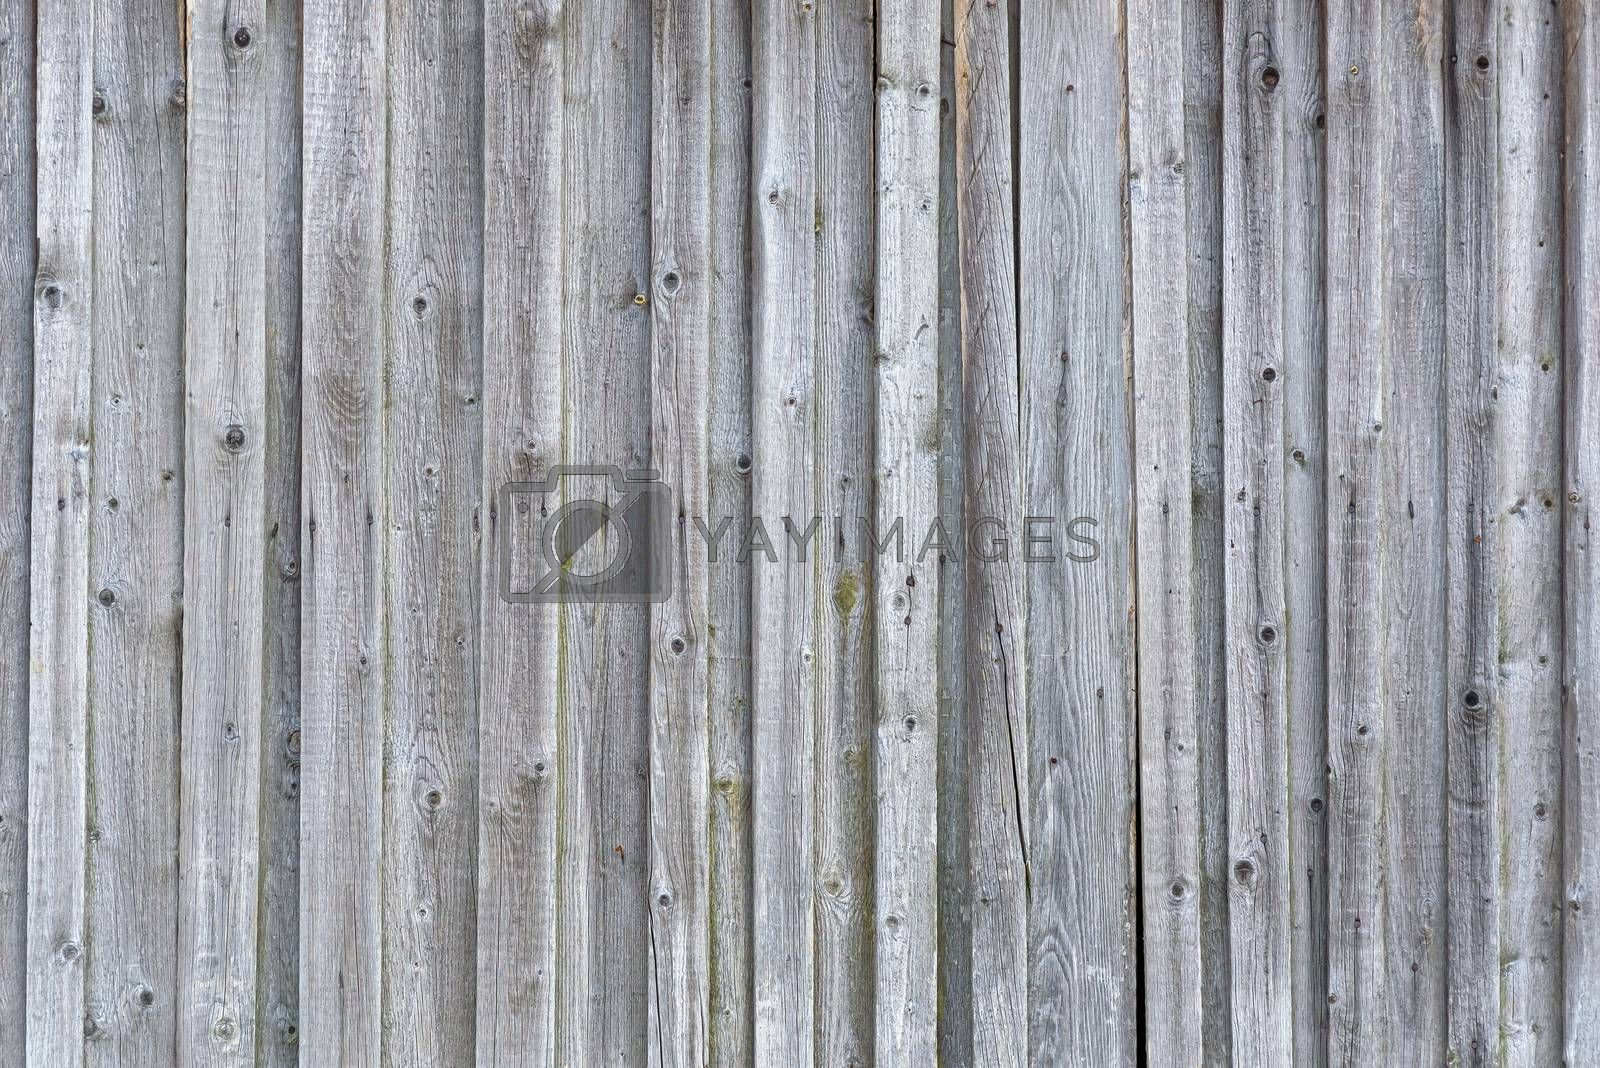 Background or texture made of old wooden planks